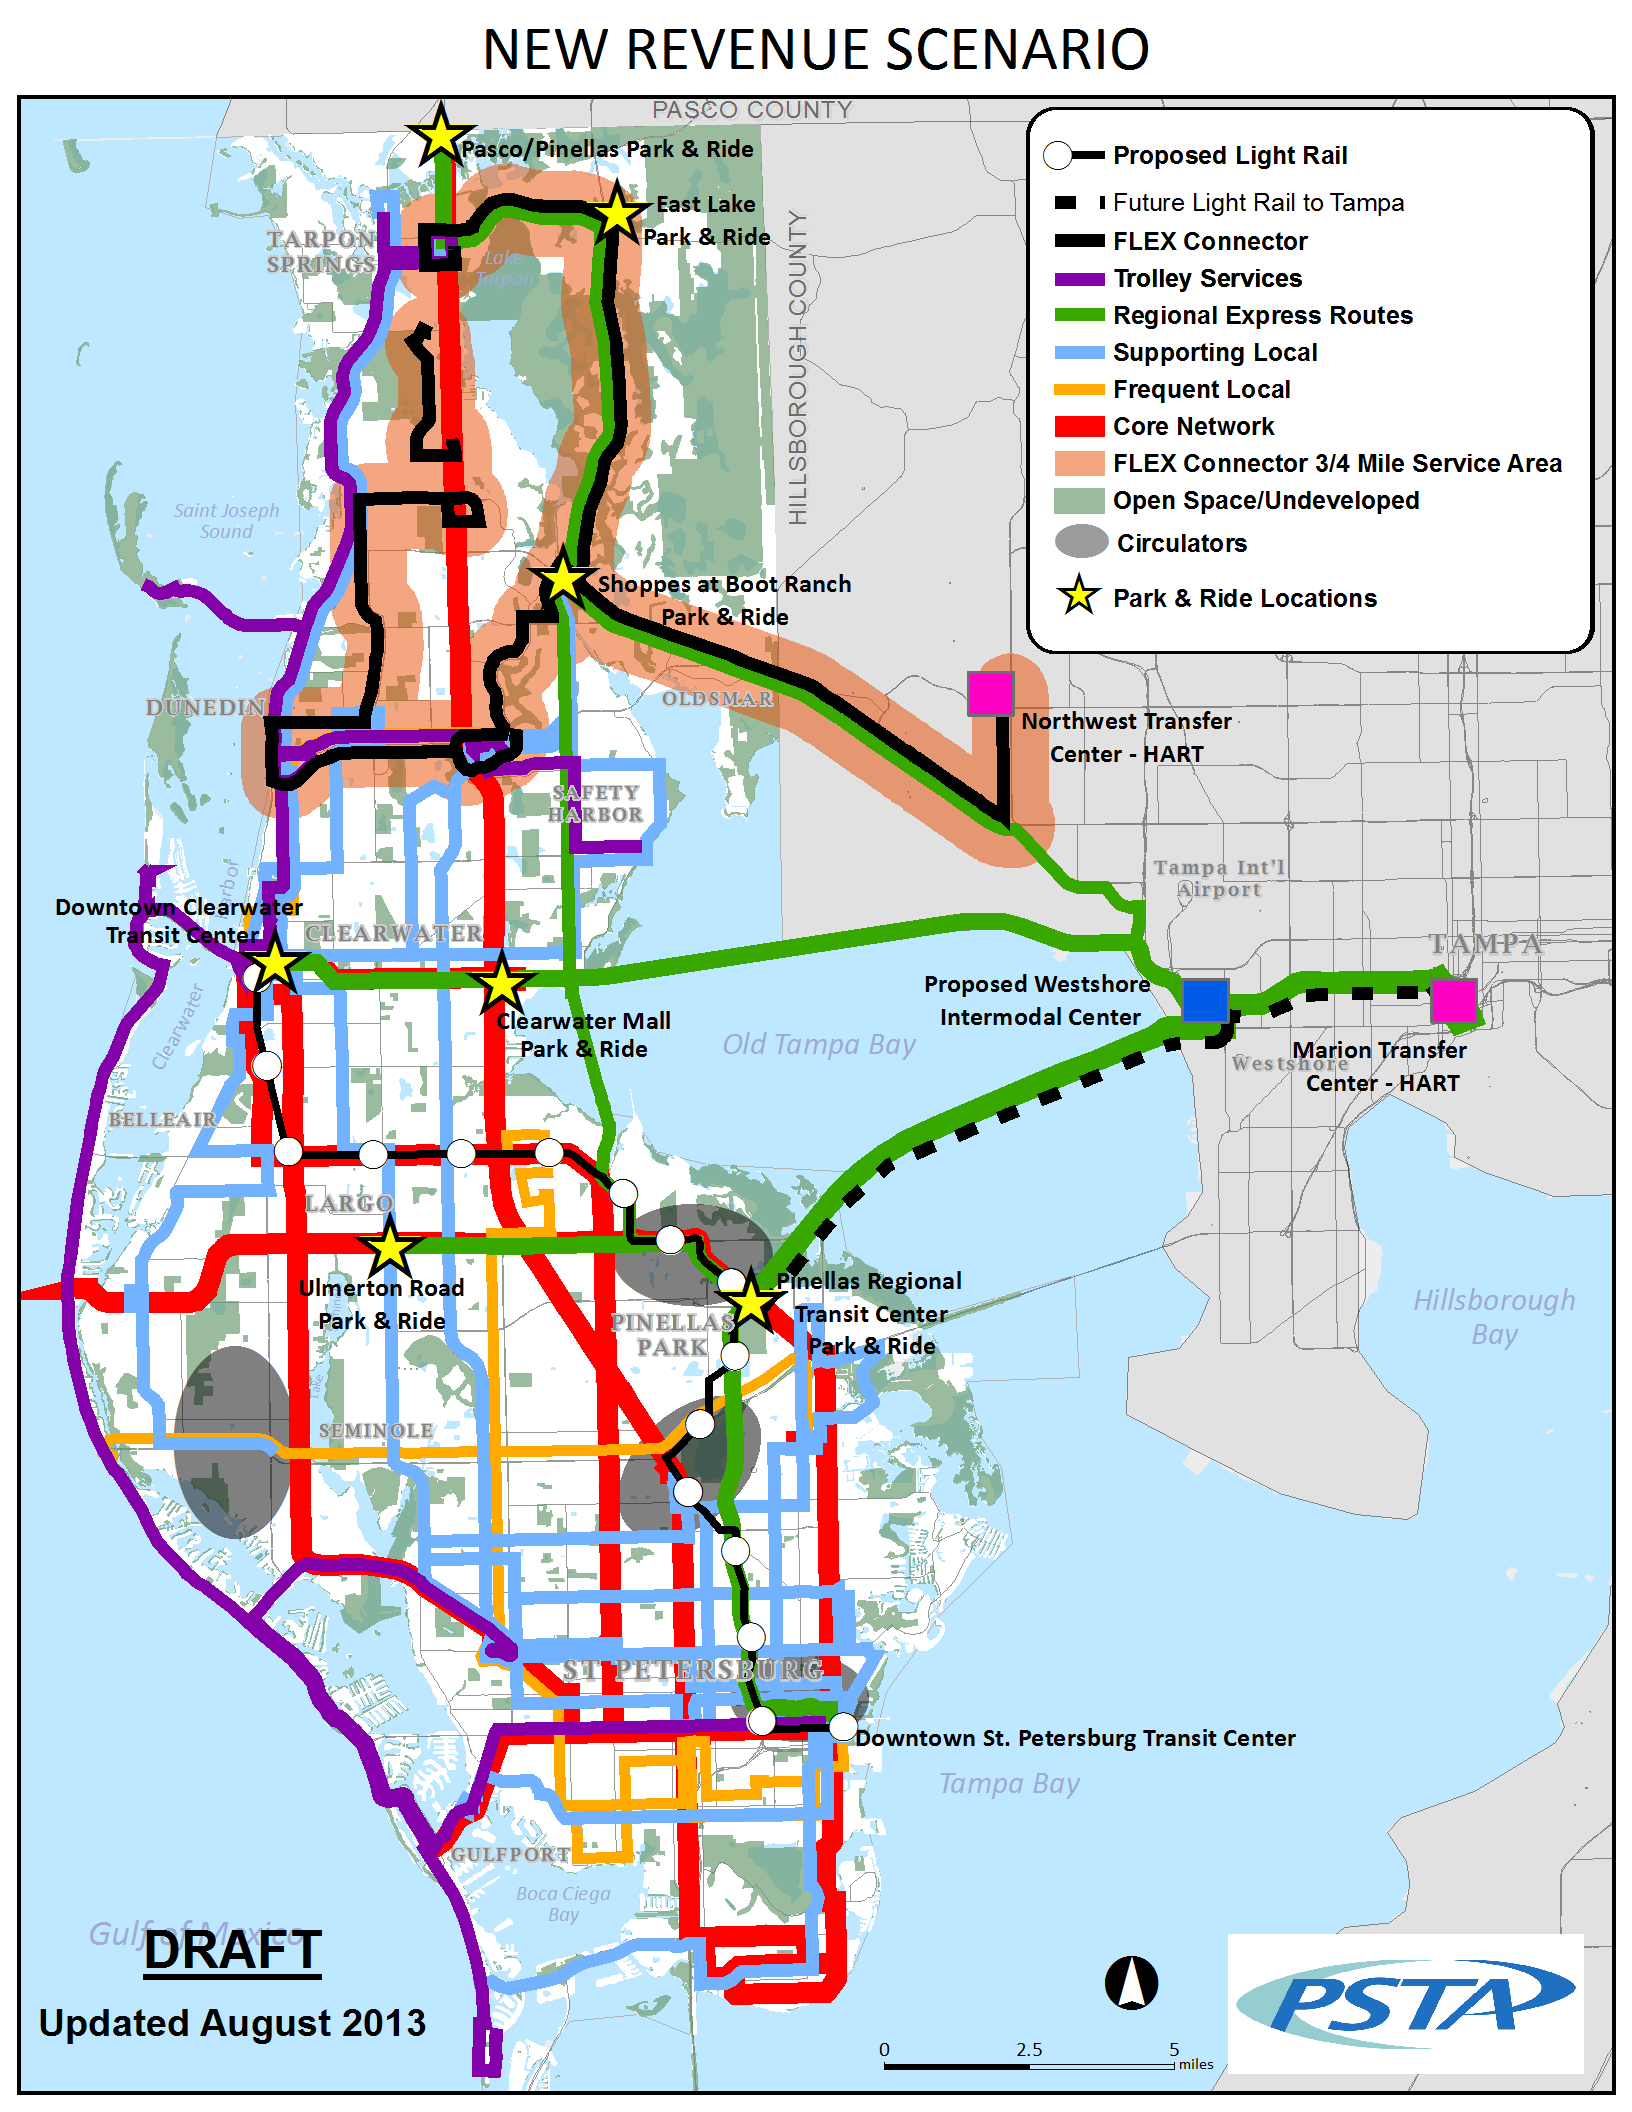 Bus Service Throughout Pinellas County Greenlight Pinellas Plan